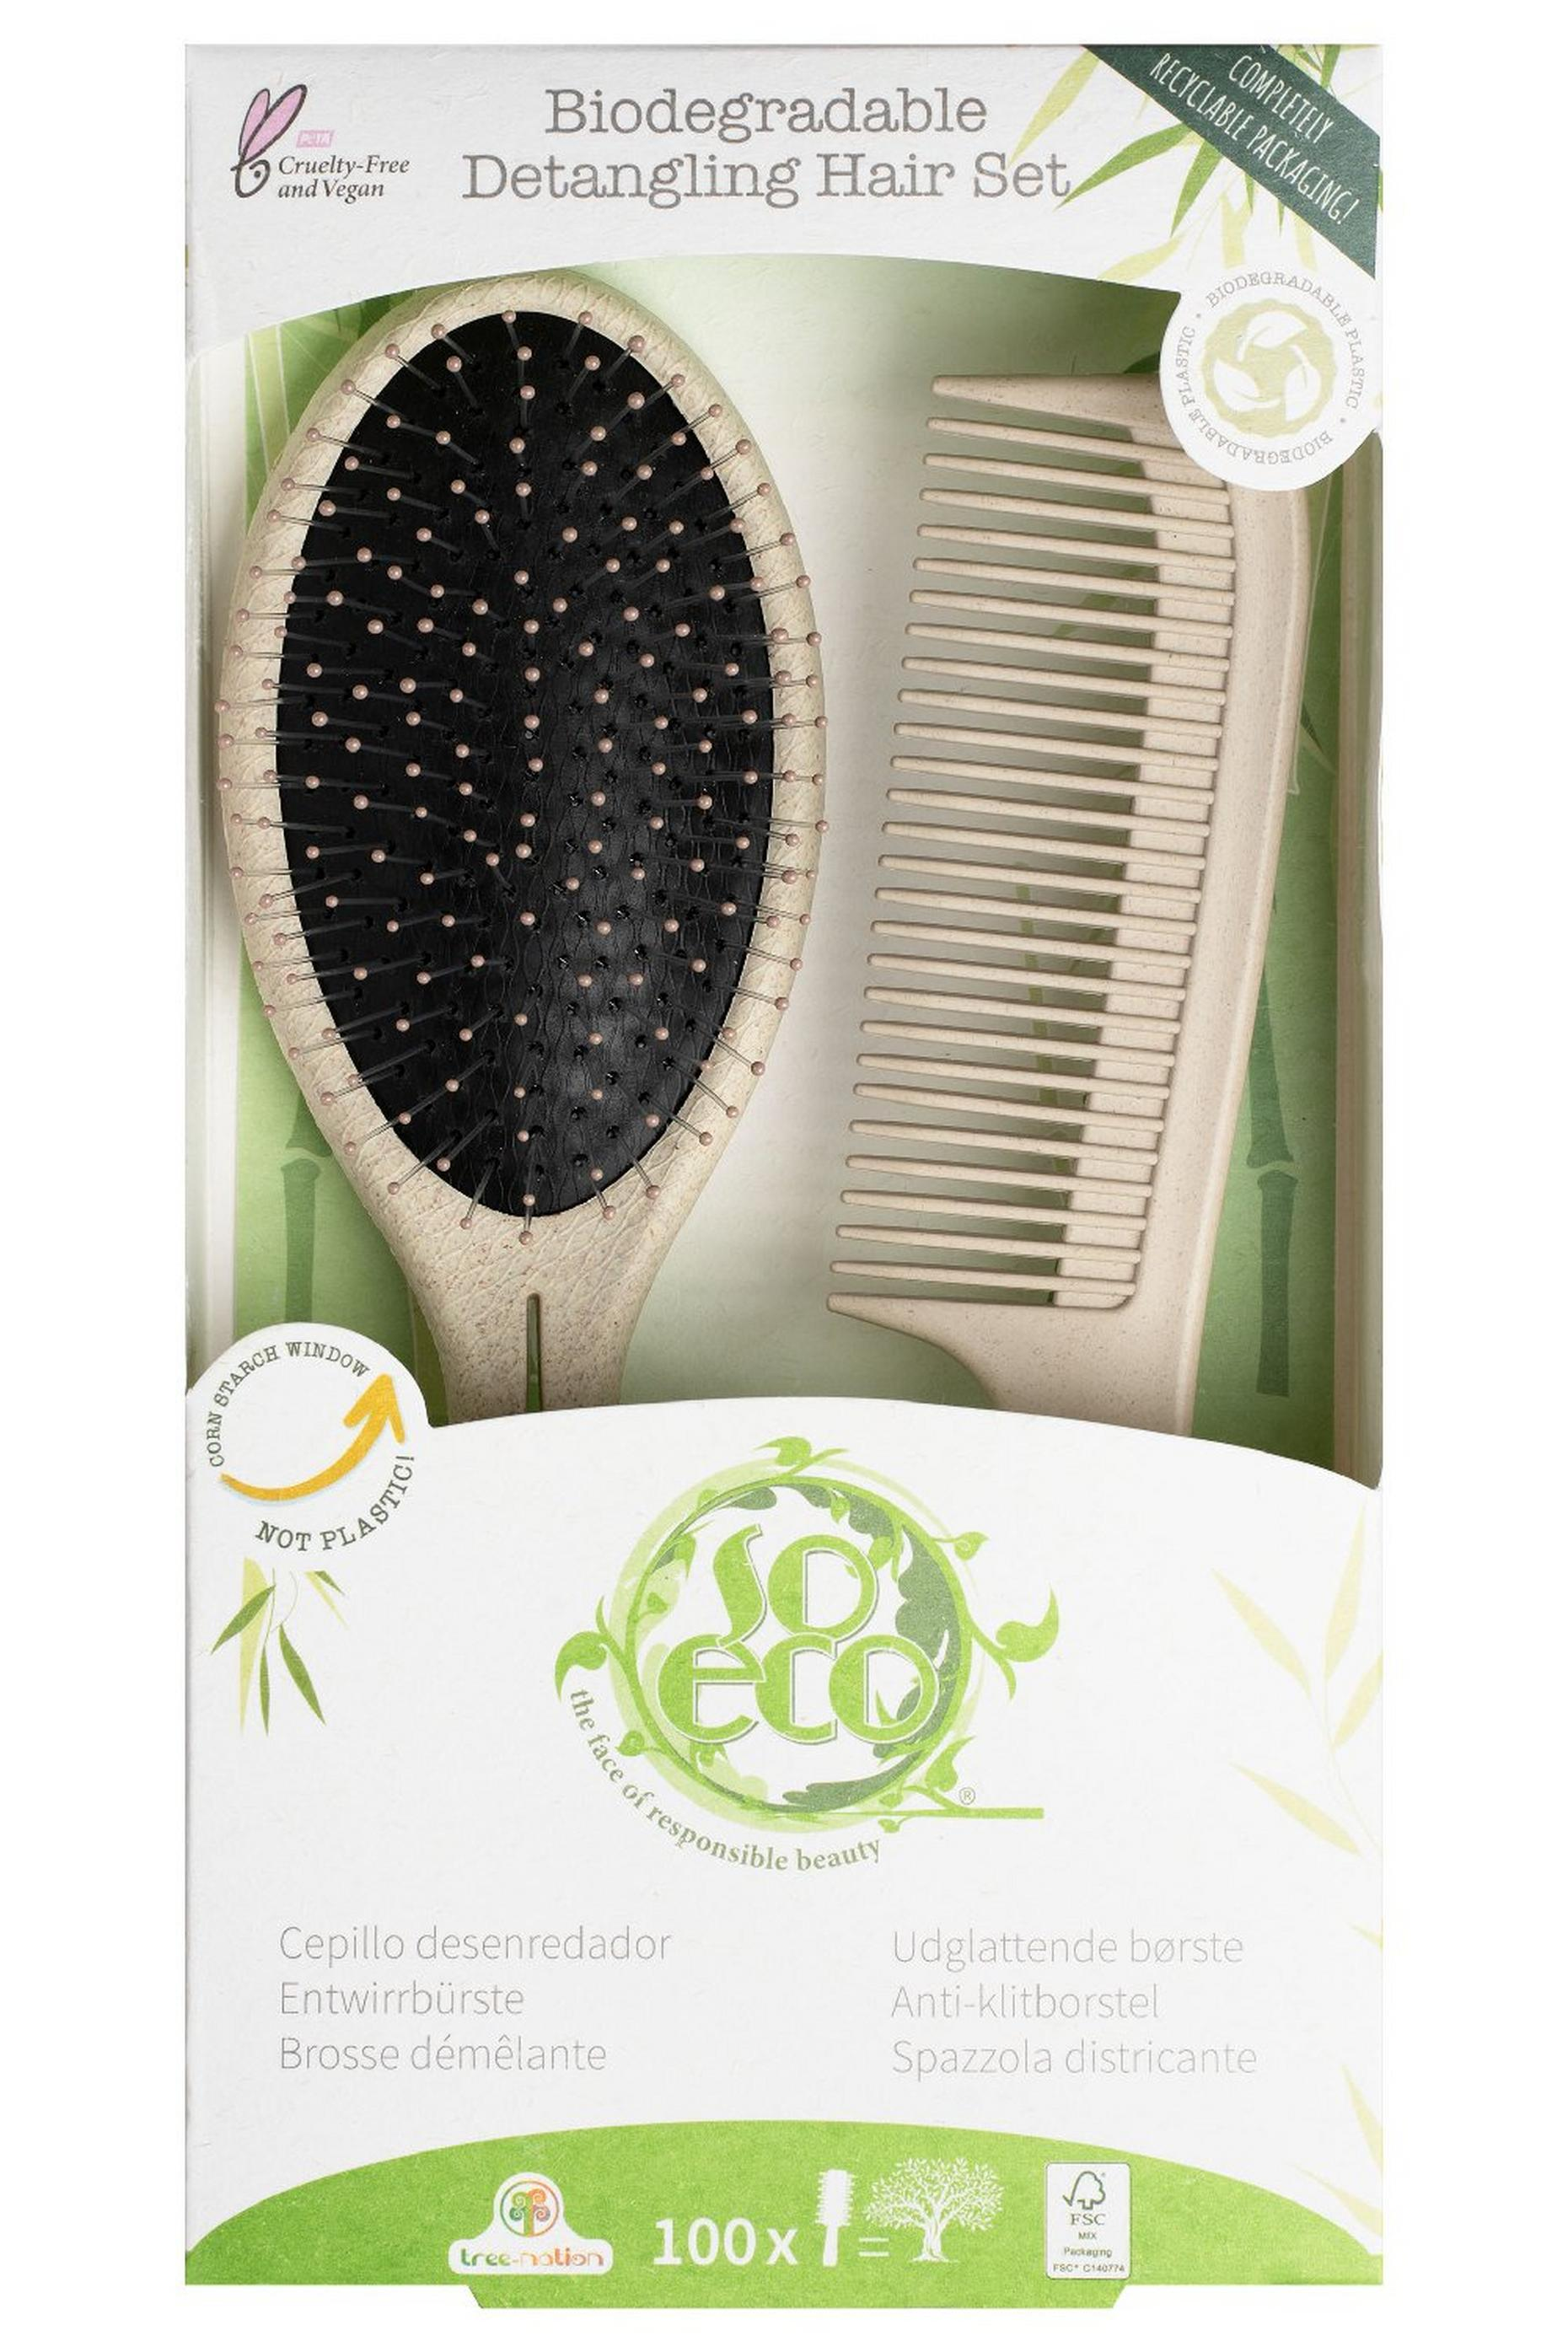 So Eco Biodegradable Detangling Hair Set